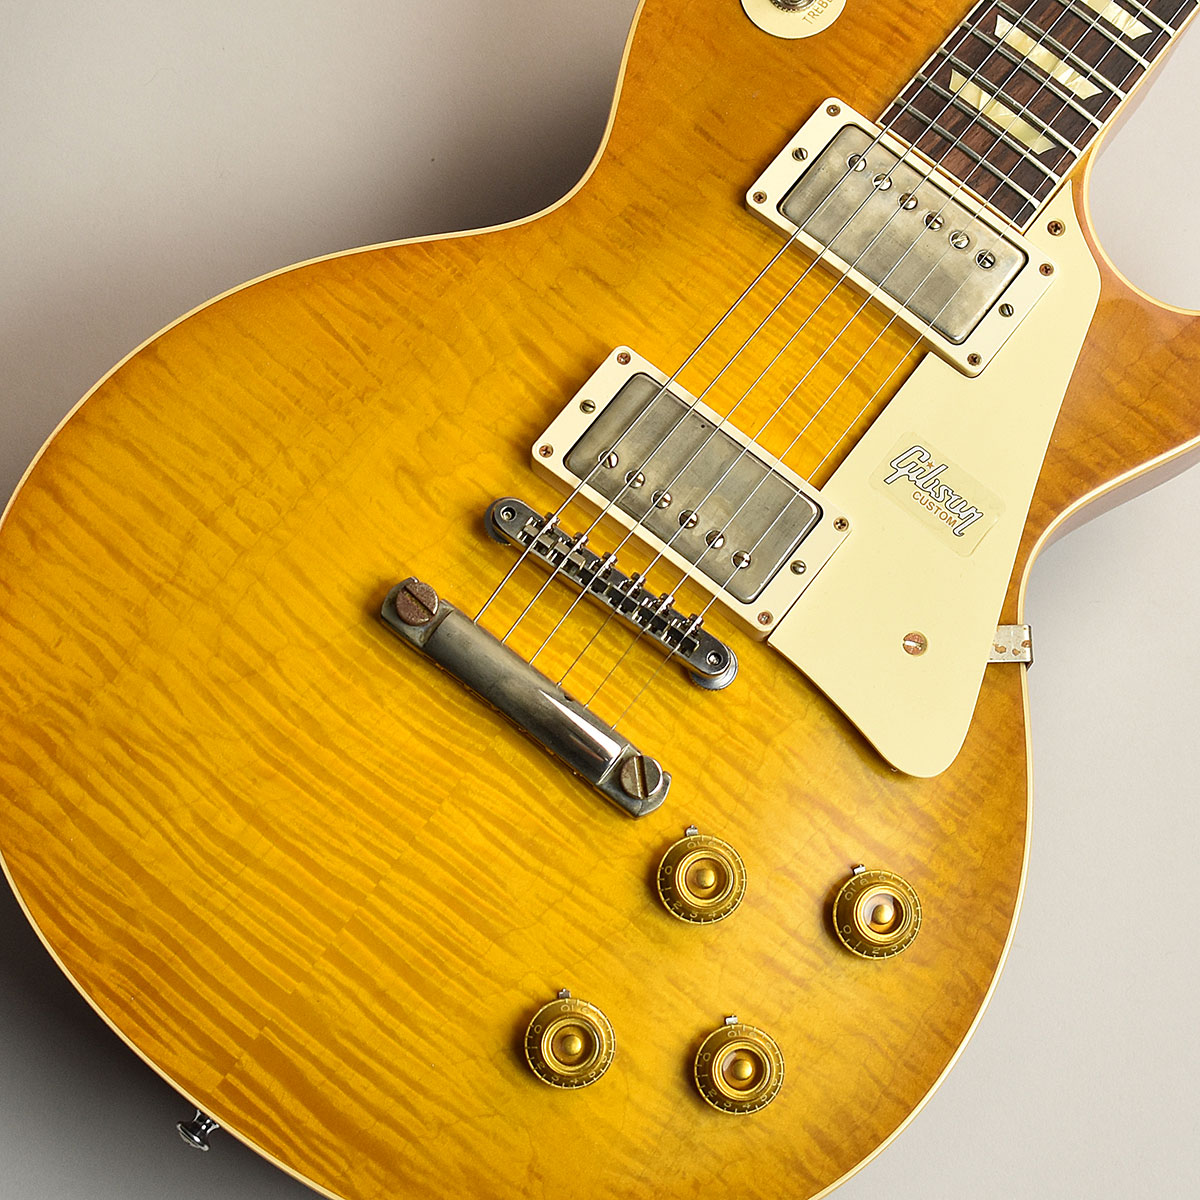 Gibson Custom Shop 60th 1959 Les Paul Standard Dirty Lemon Fade VOS S/N:991109 【ギブソン カスタムショップ】【60th Anniversary】【現地選定品】【未展示品】